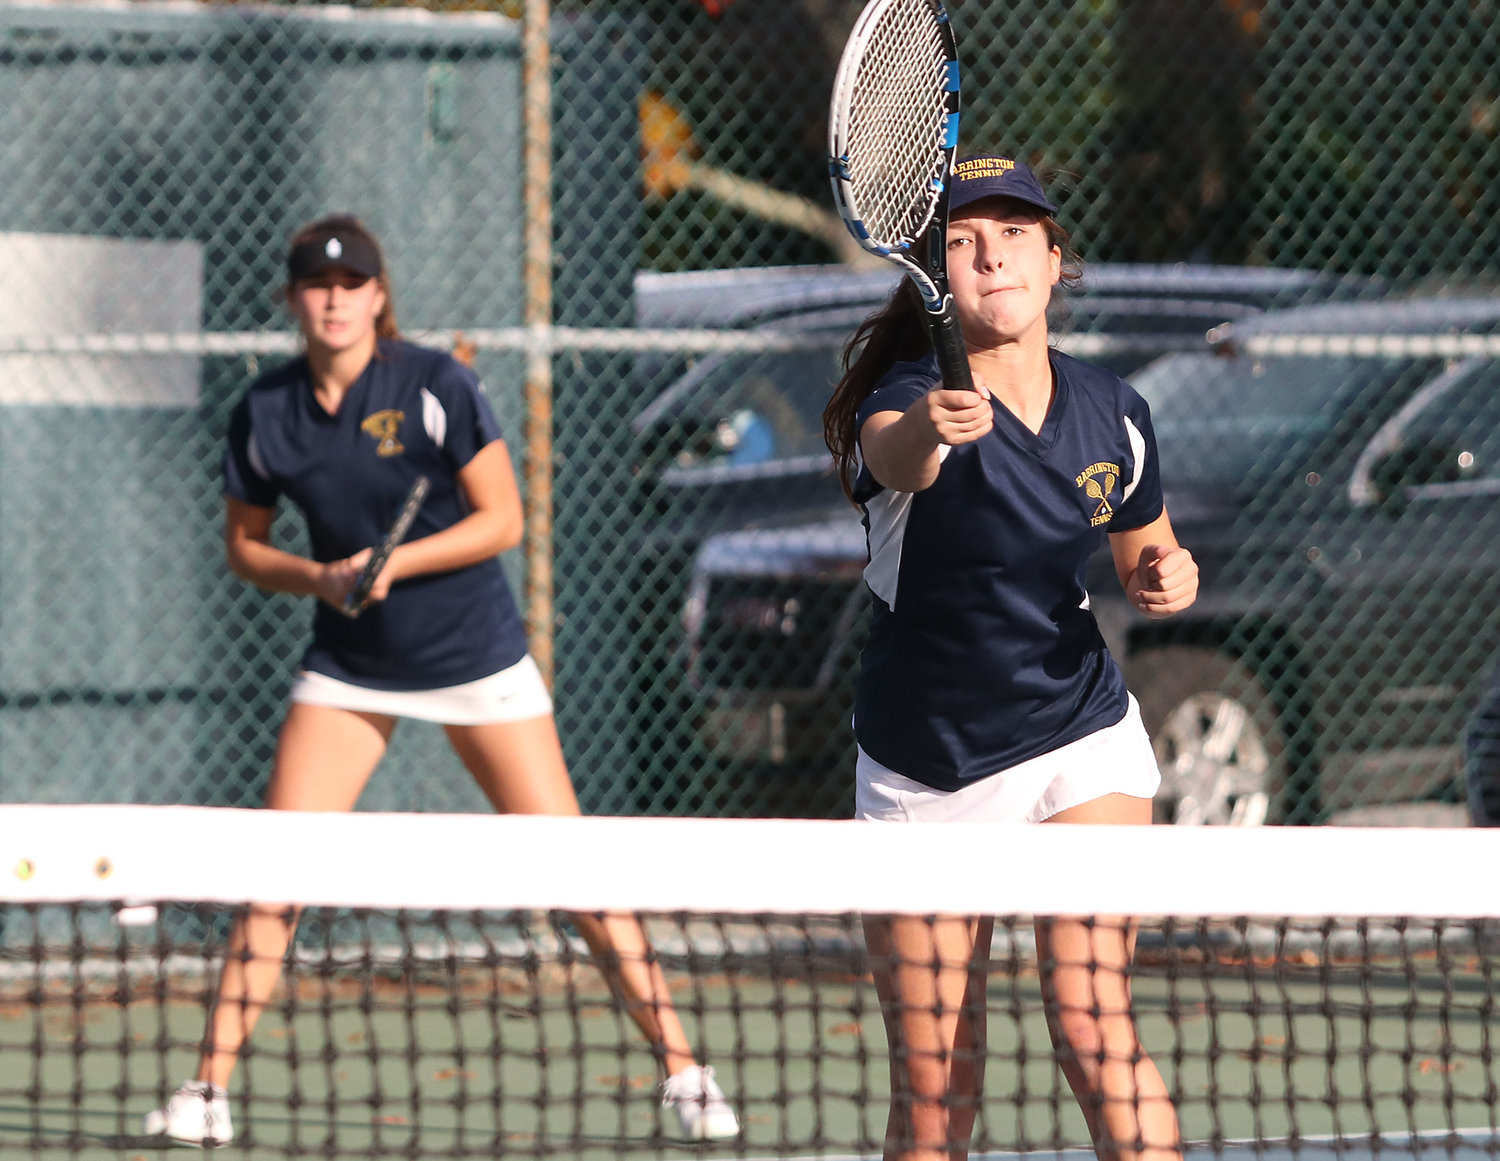 Barrington High School's number one doubles team of Hailey Walter (left) and Eve Stockwell battle LaSalle opponents during the Division I state finals on Saturday.